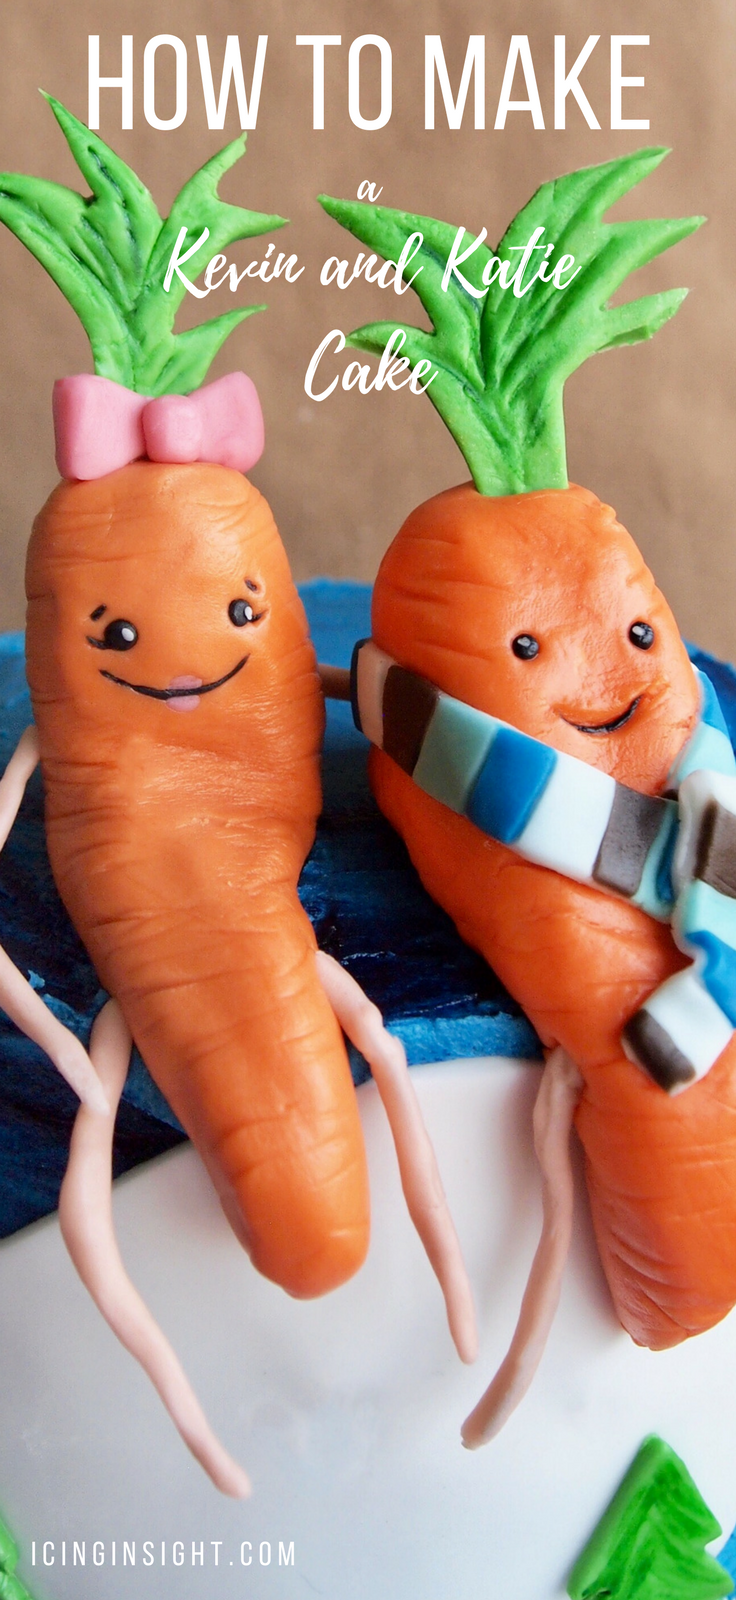 Kevin and Katie The Aldi Carrots Cake Recipe